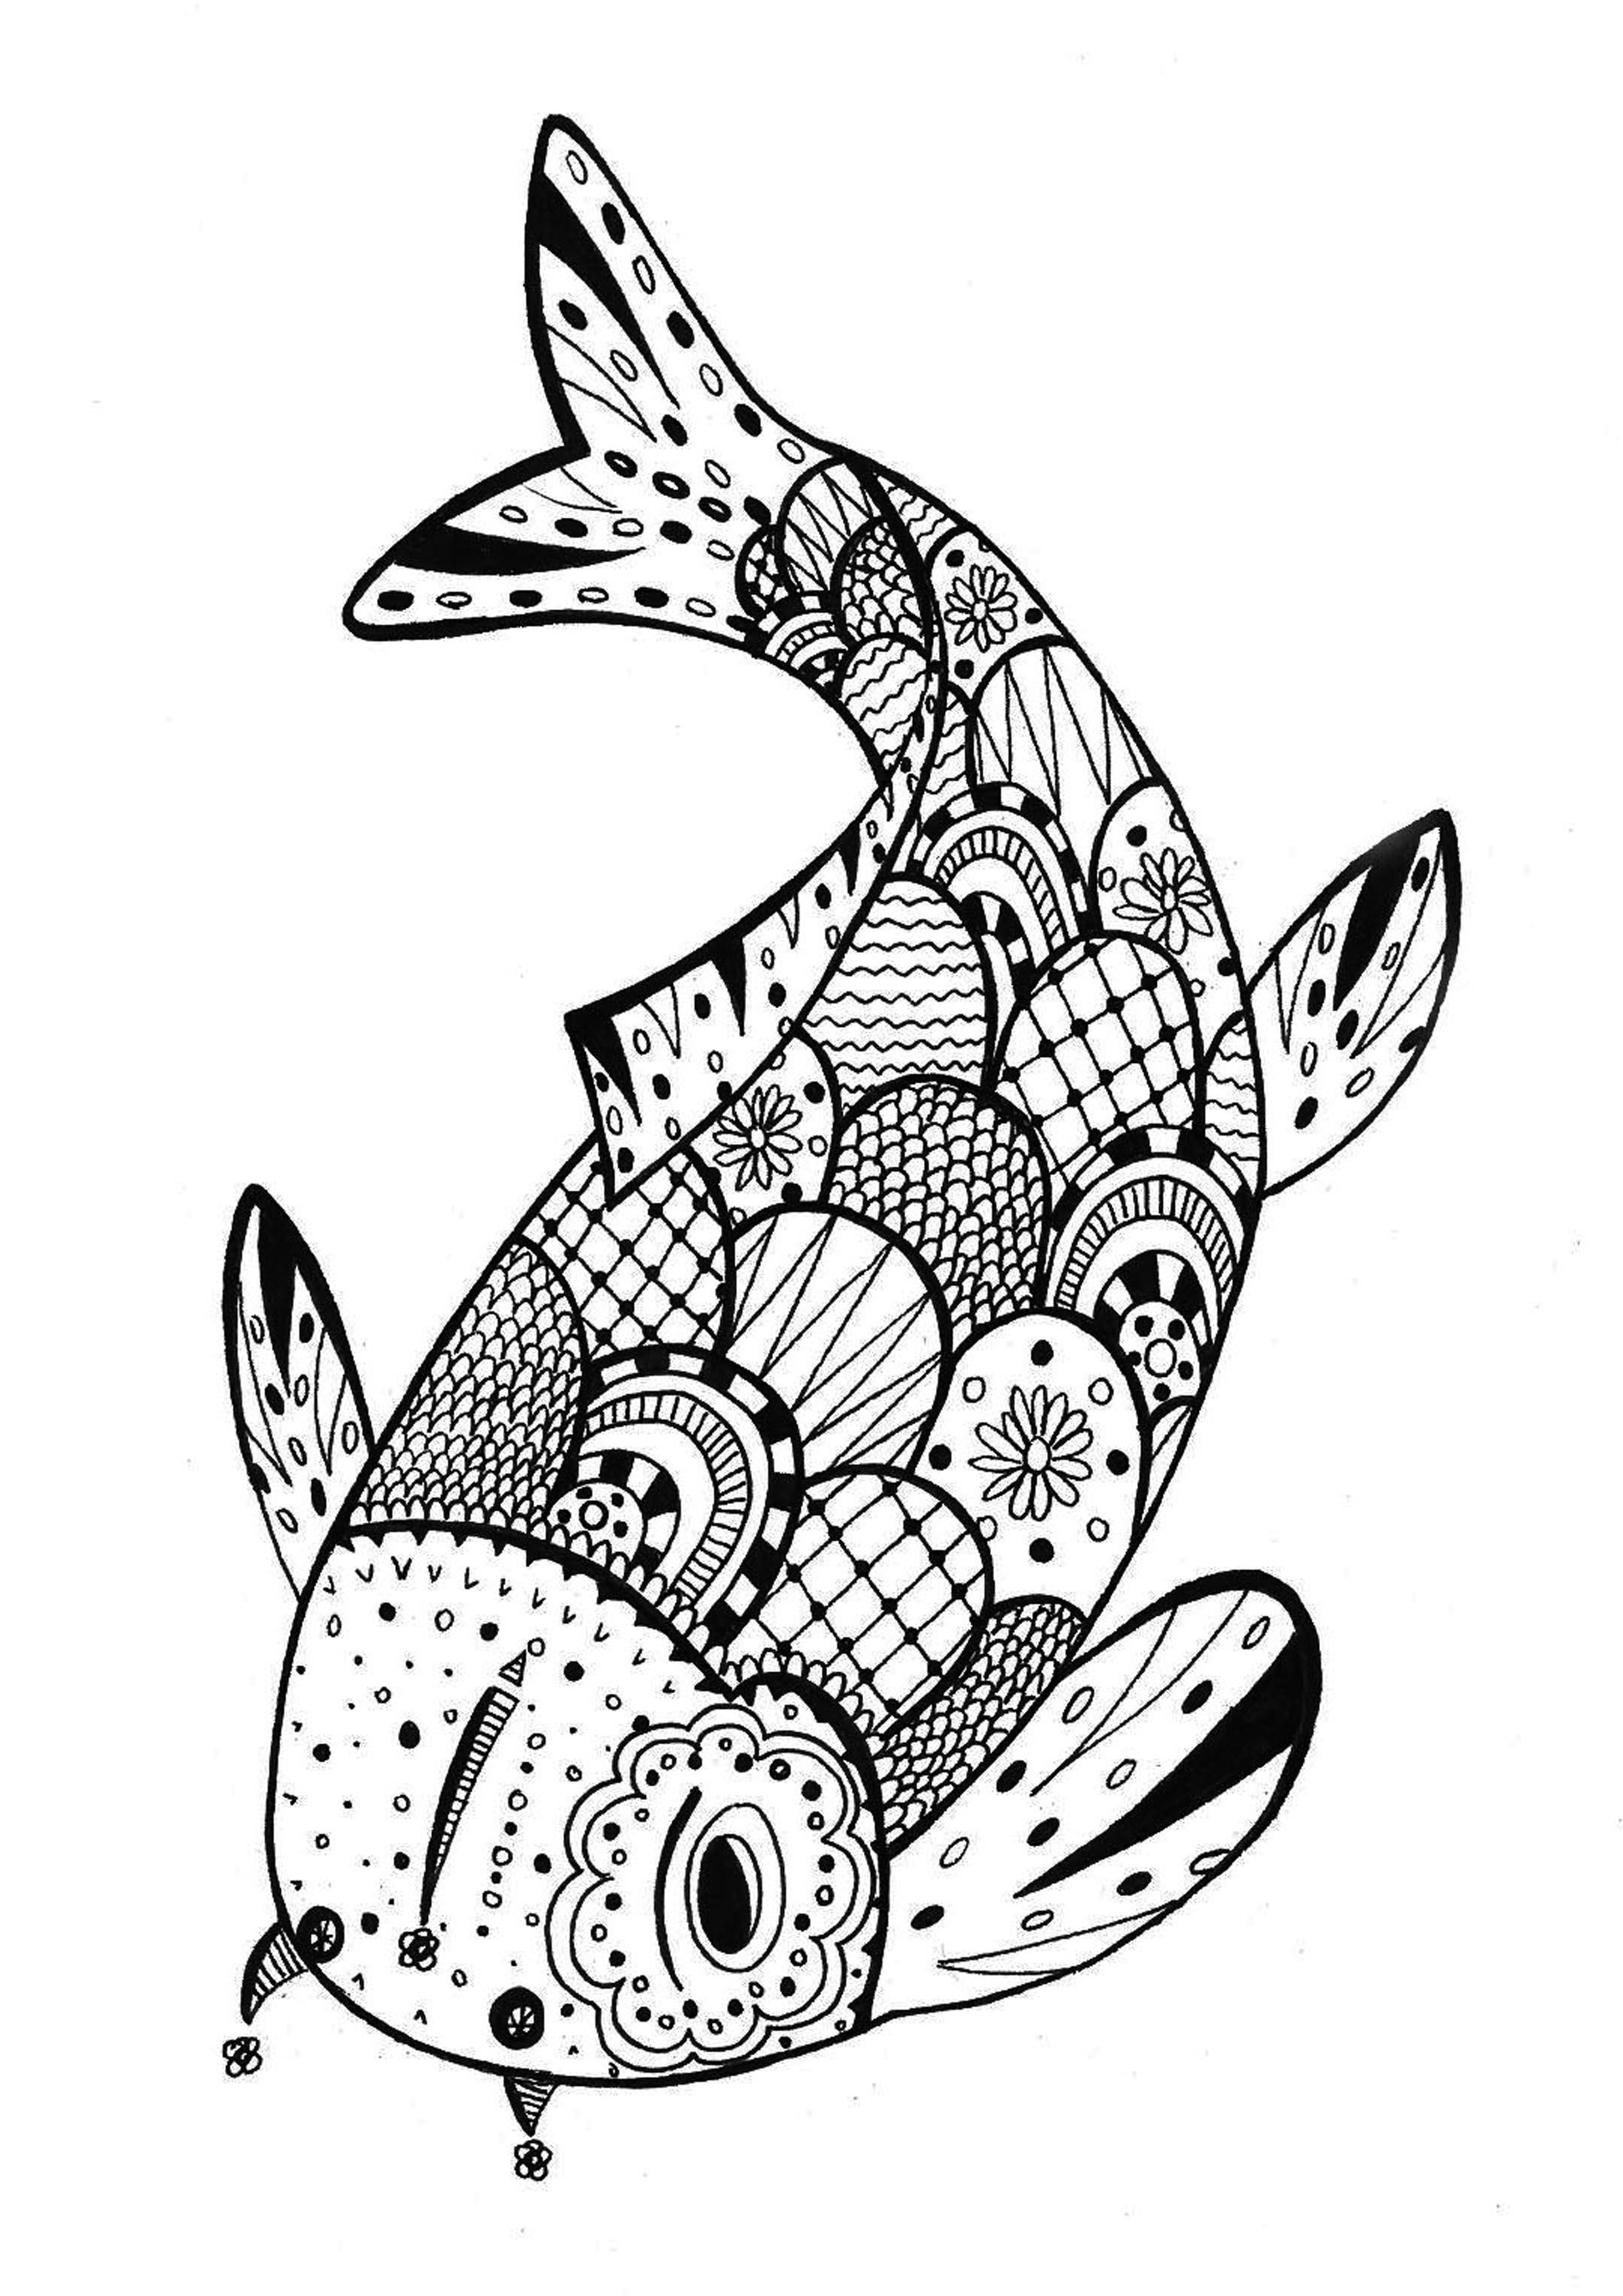 zentangle coloring pages free printable cute cat adult zentangle coloring pages printable free zentangle printable coloring pages